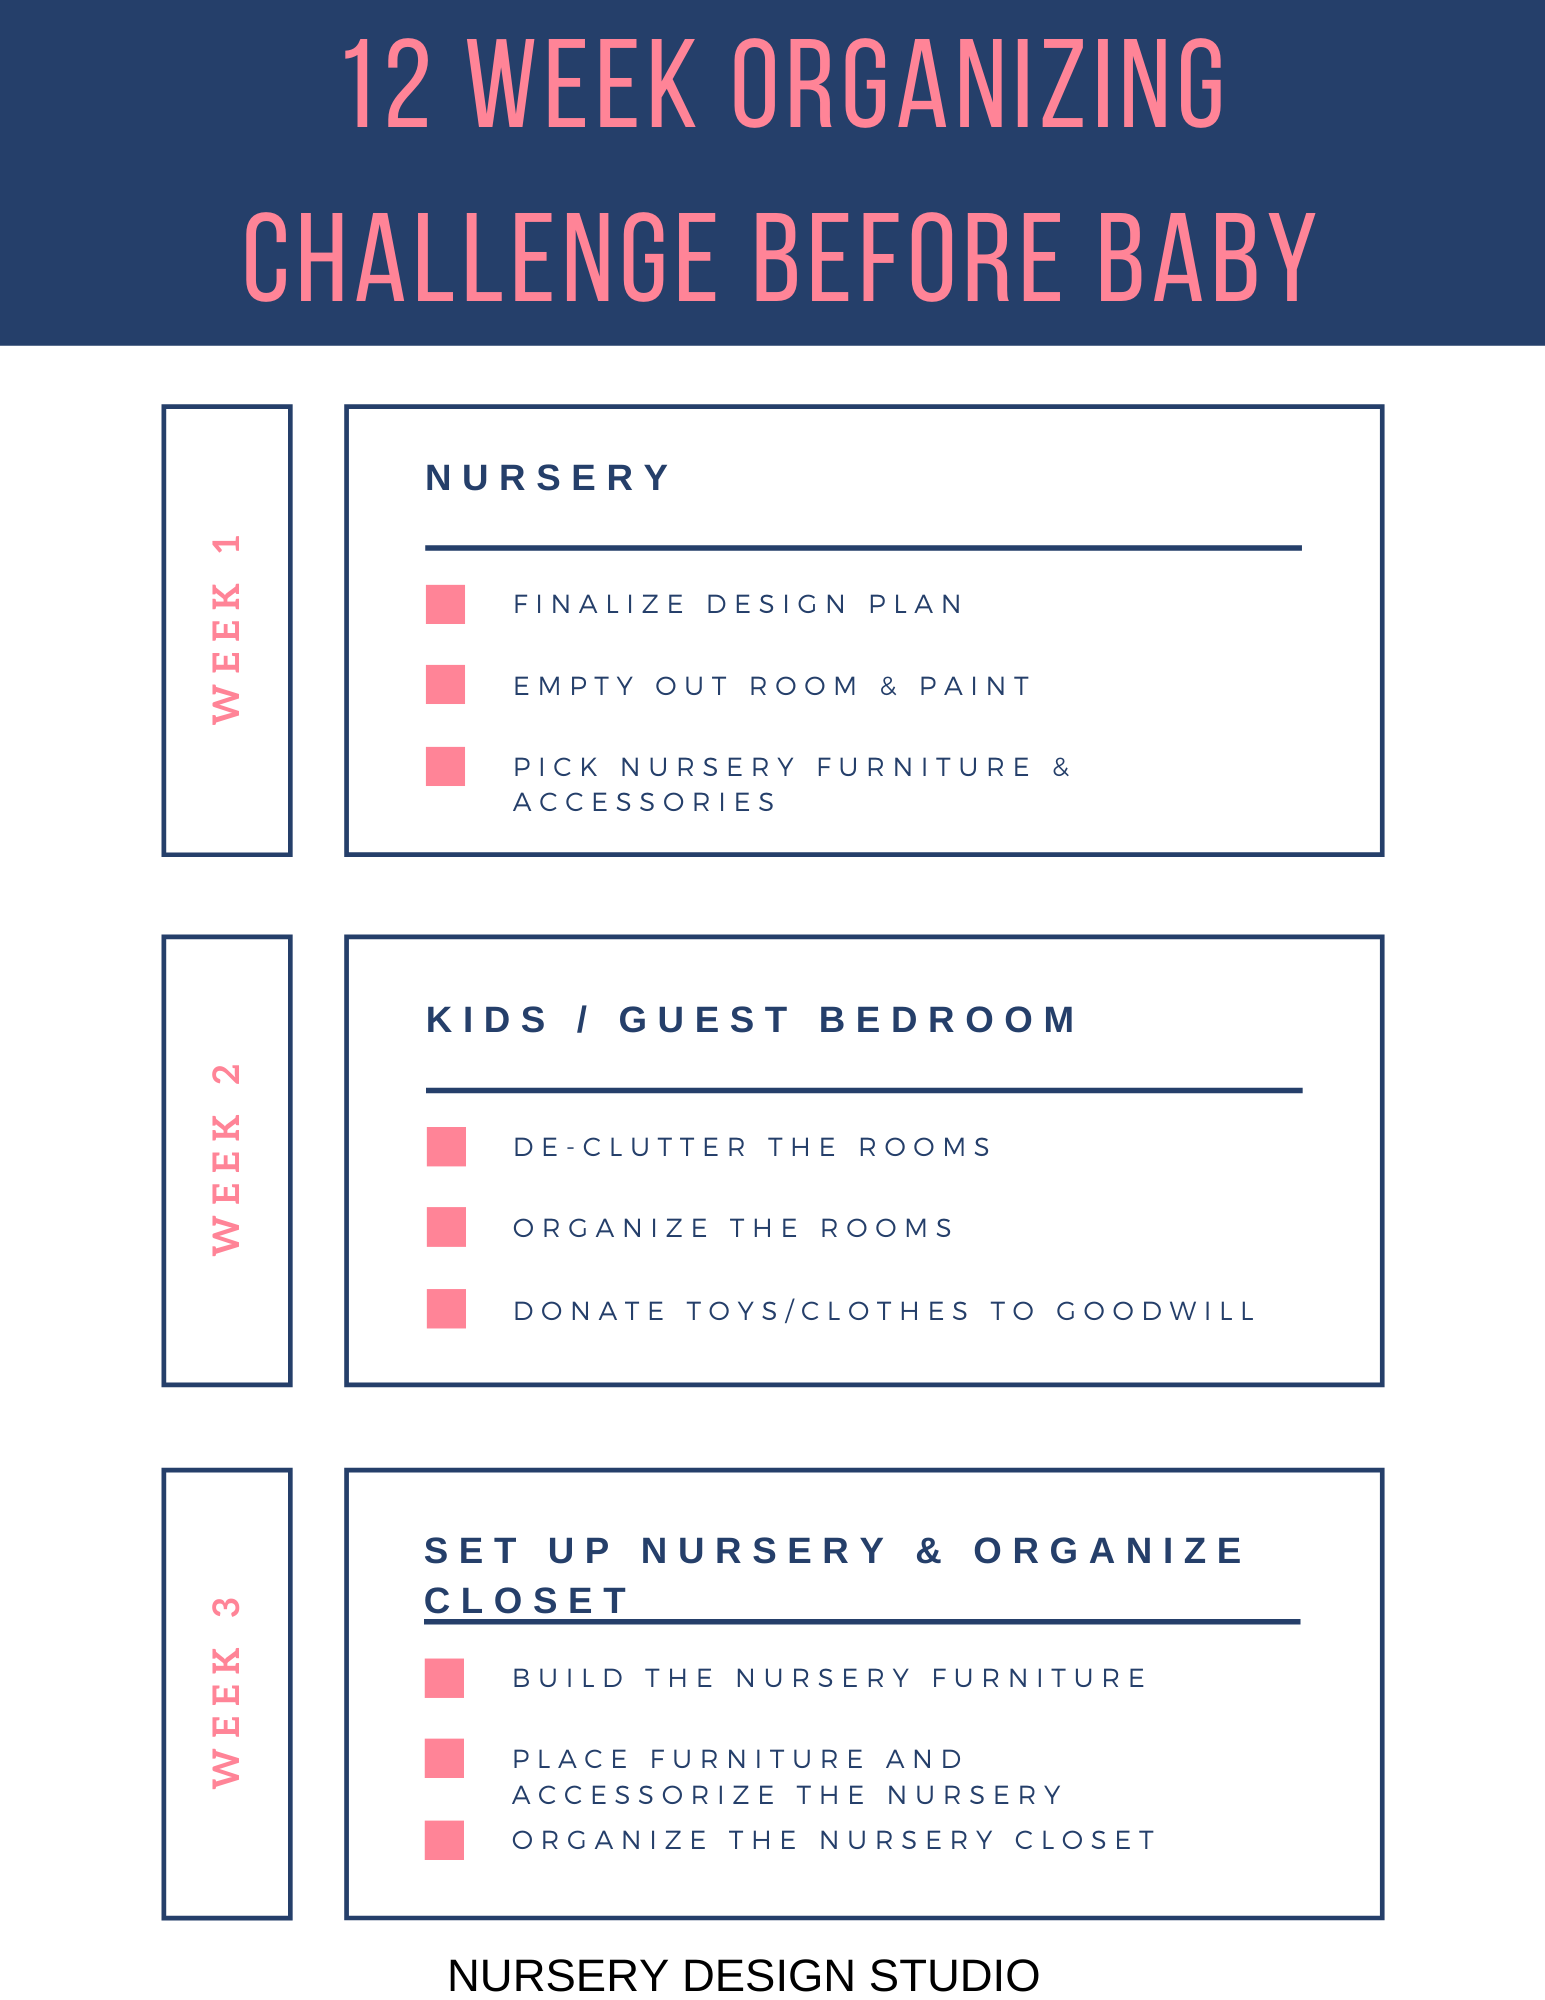 12 WEEK ORGANIZING CHALLENGE BEFORE BABY PRINTABLE CHECKLIST